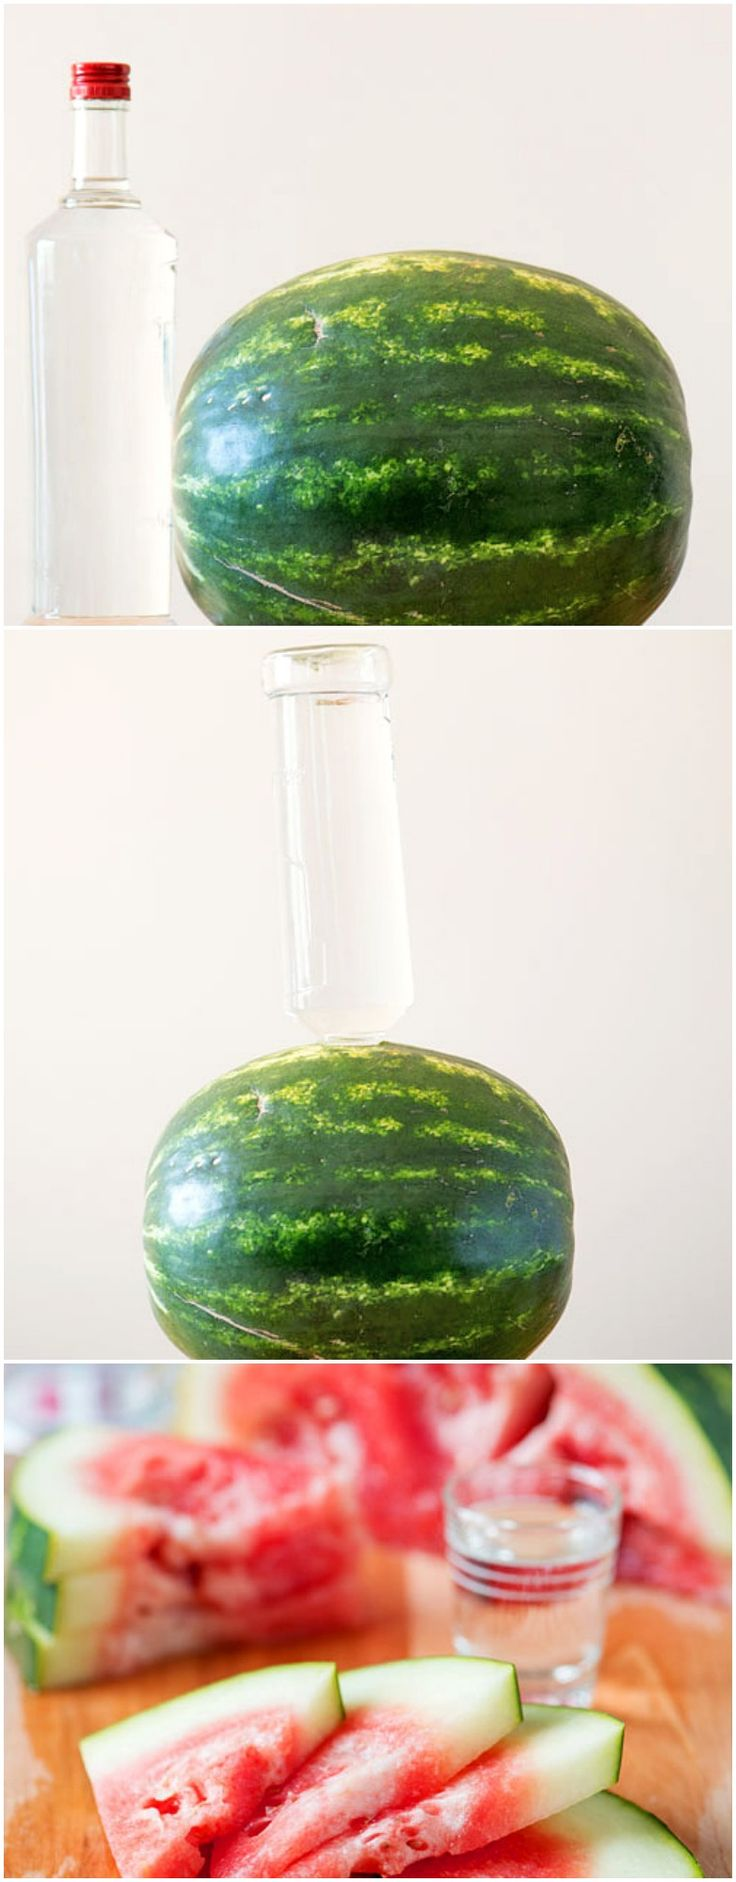 HOW TO: Make Vodka-Infused Watermelon {click through for #video}